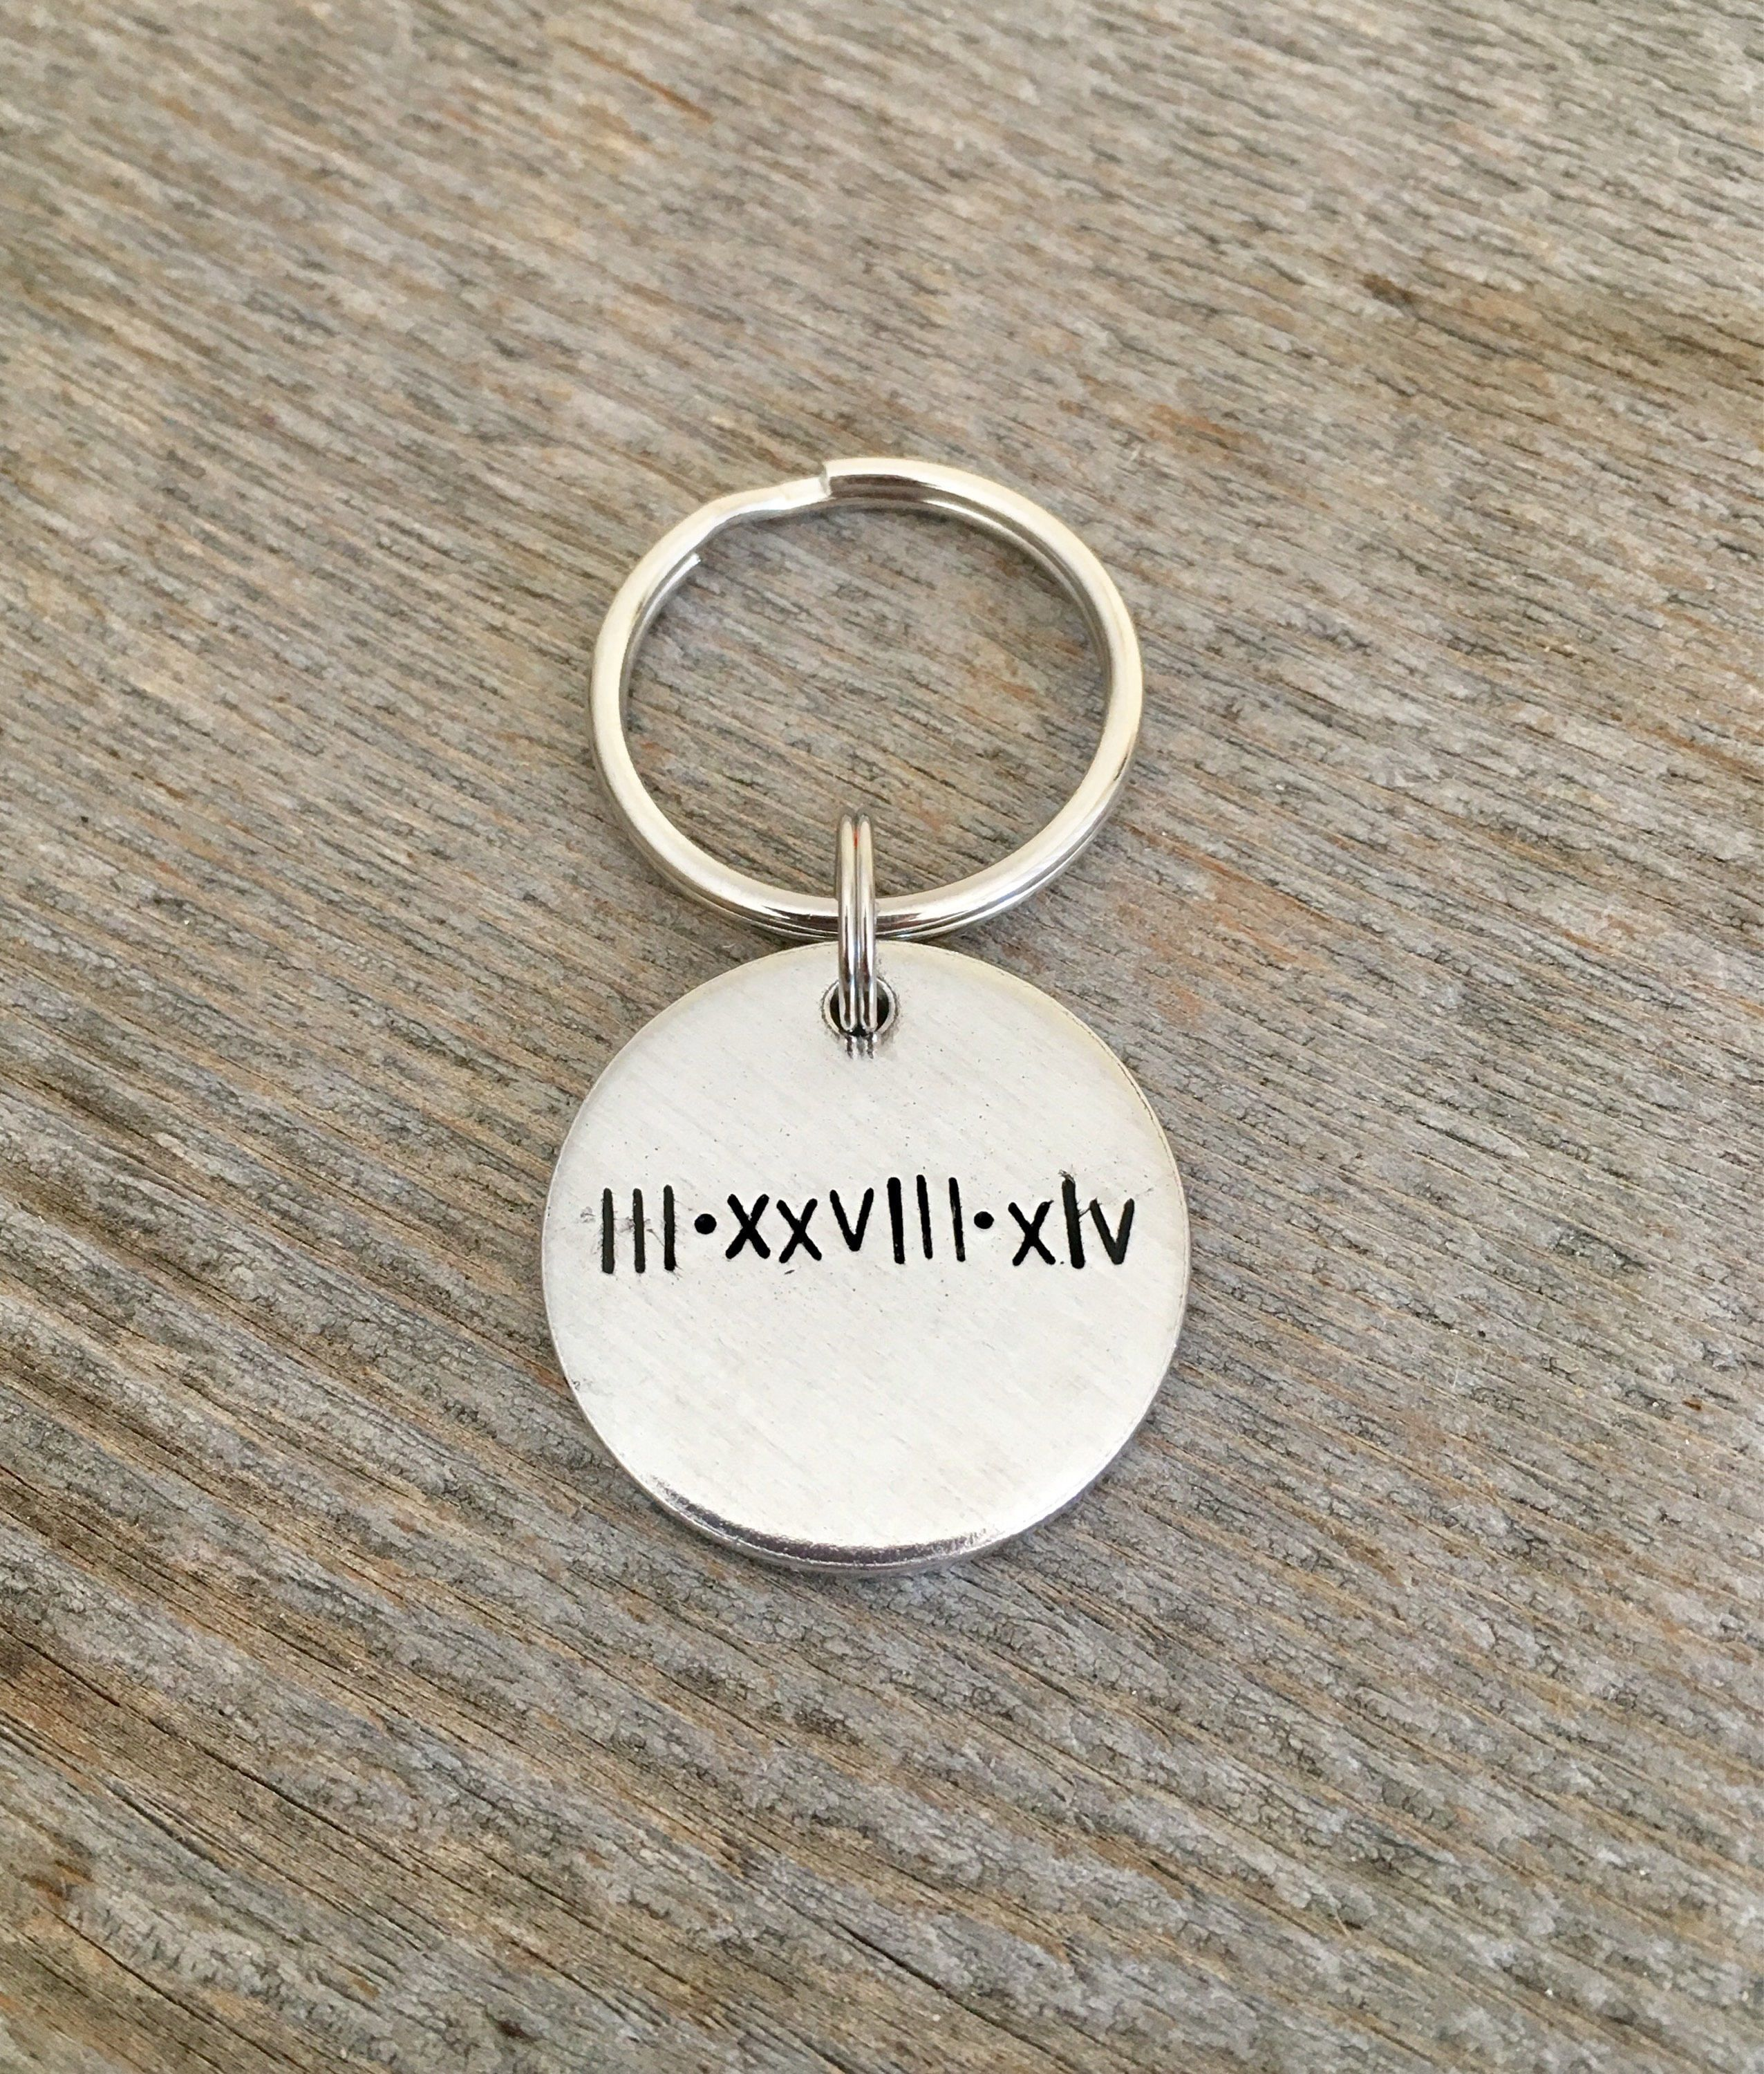 Roman Numeral Keychain Personalized Gift Special Date Birthday